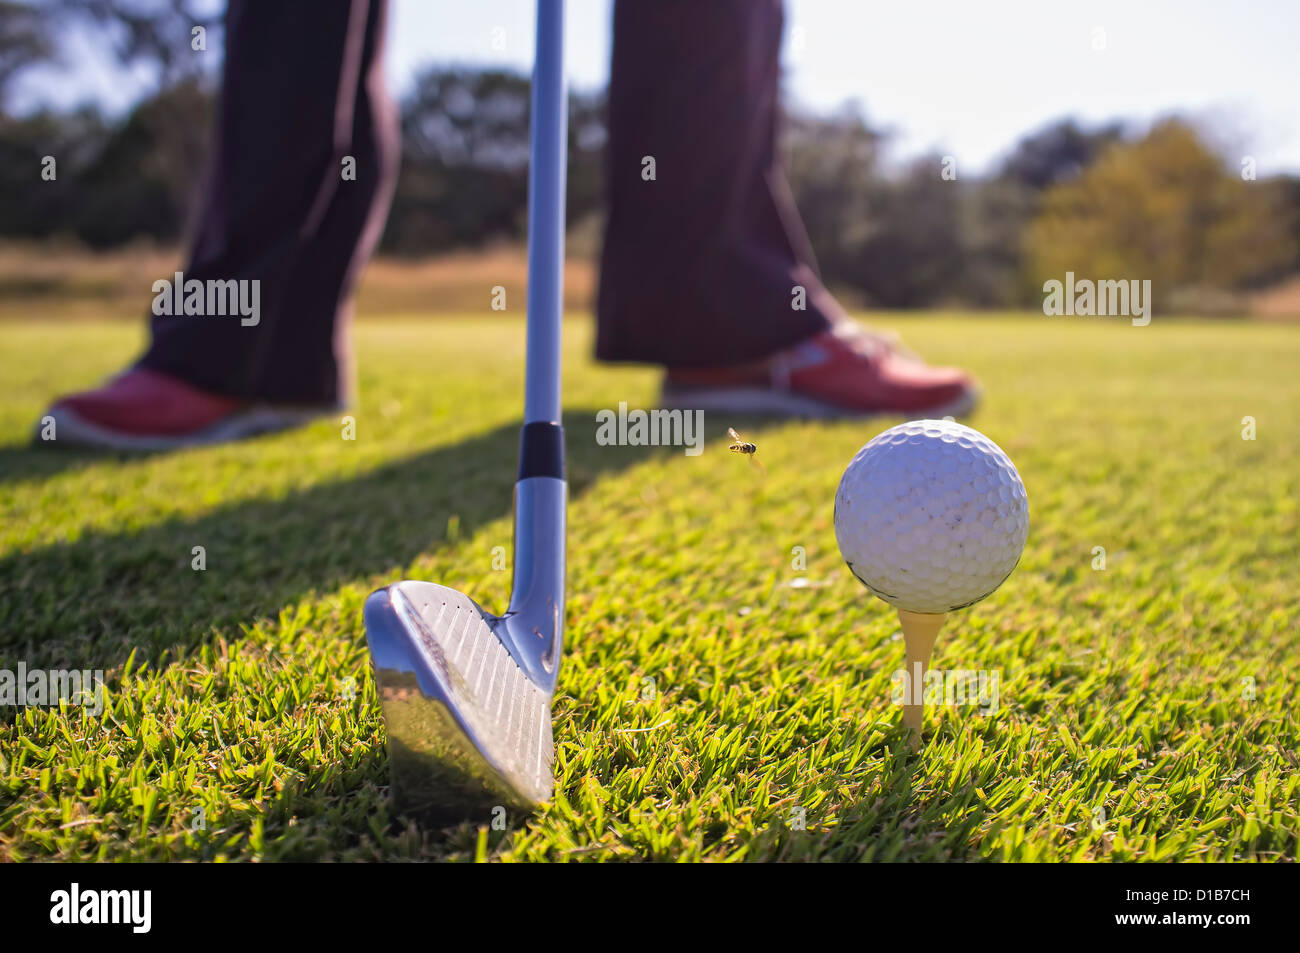 Golf ball on a tee, flying insect approaching - Stock Image